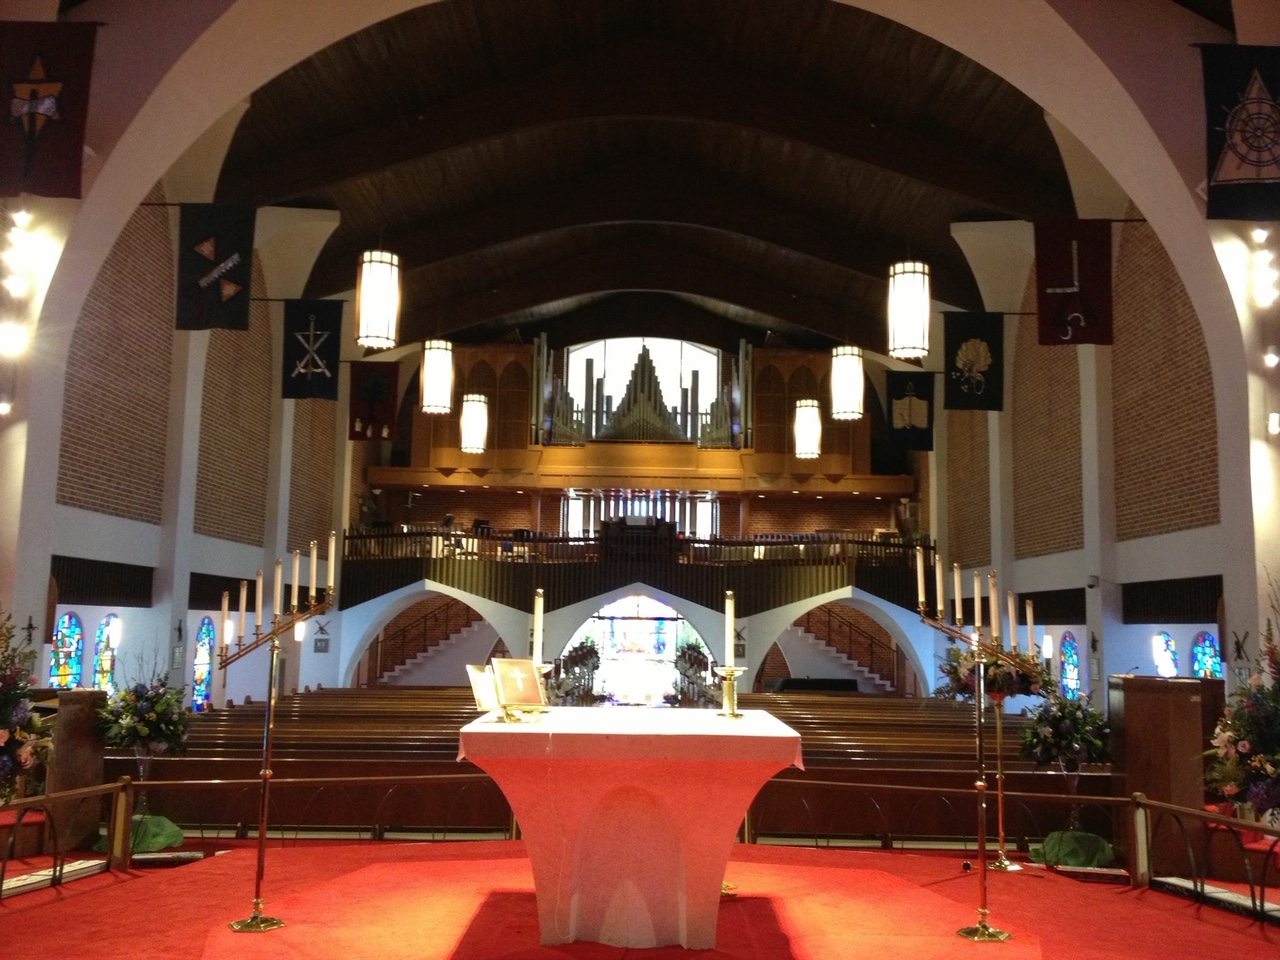 Enjoy the sounds of Great Music at St. Gregory's Church starting November 7th.